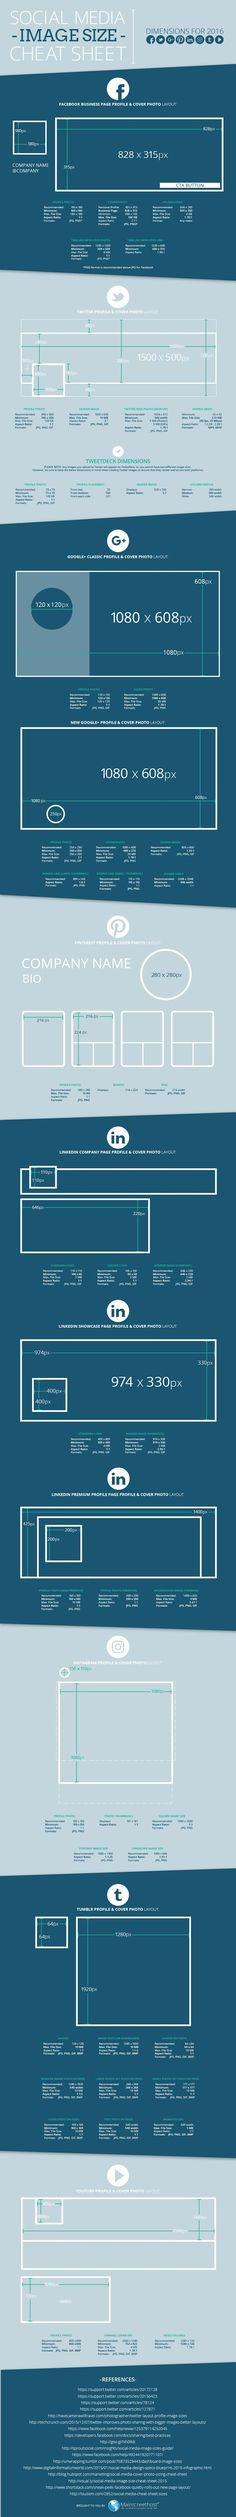 Social Media Image Cheat Sheet (updated August 2016)